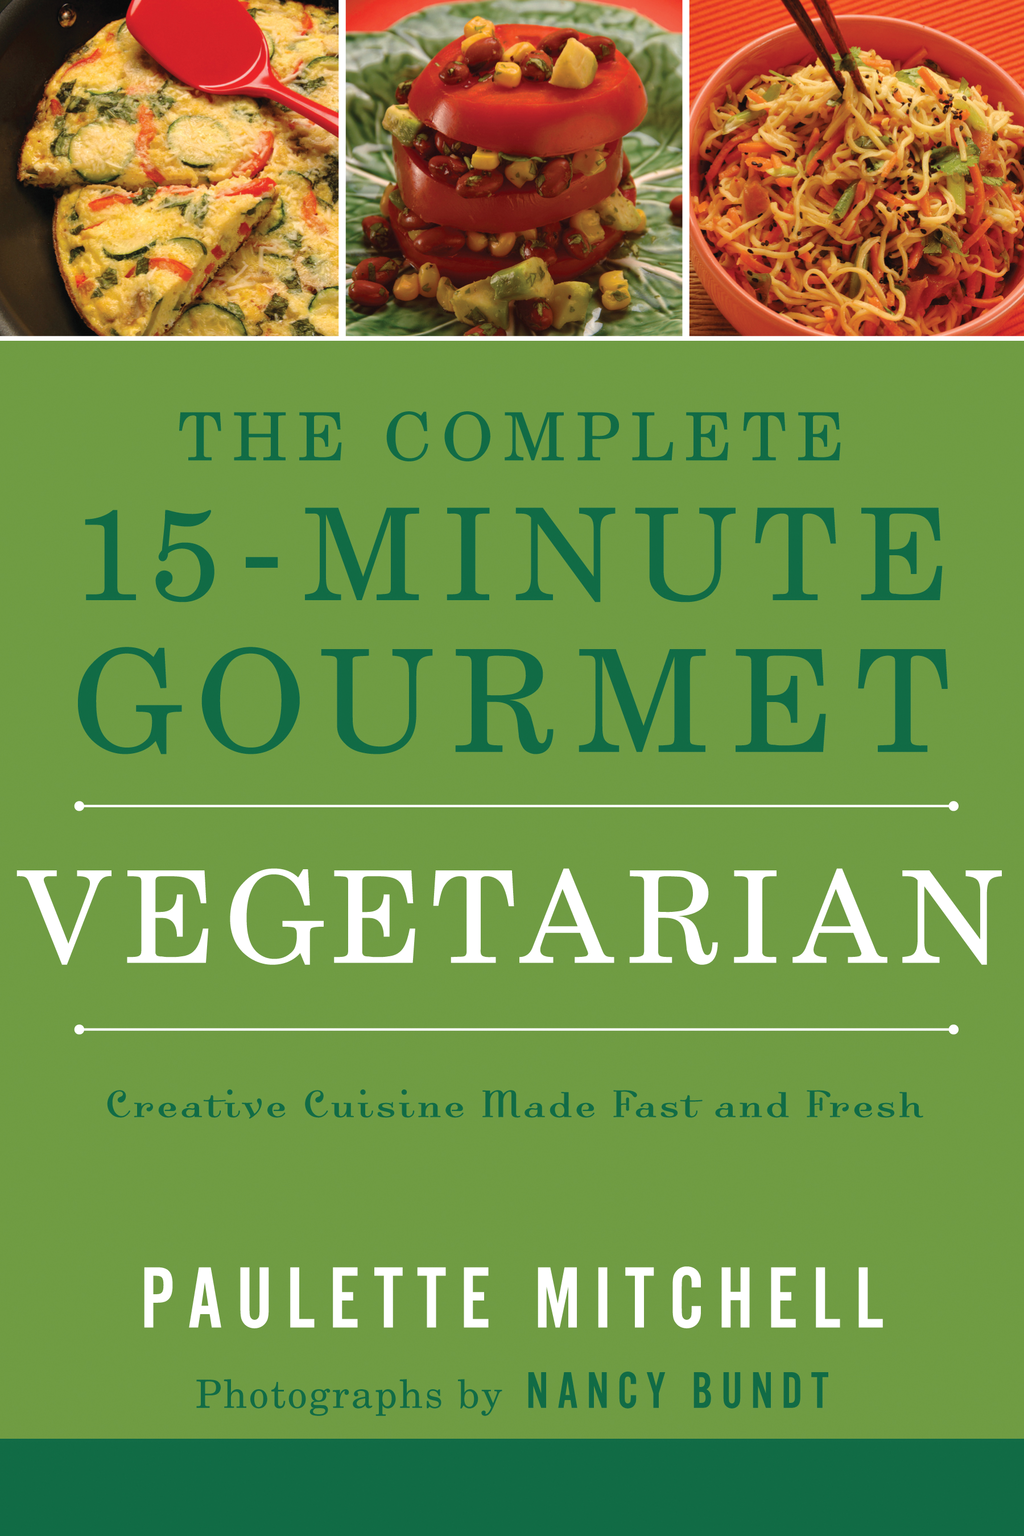 The Complete 15 Minute Gourmet: Vegetarian By: Paulette Mitchell